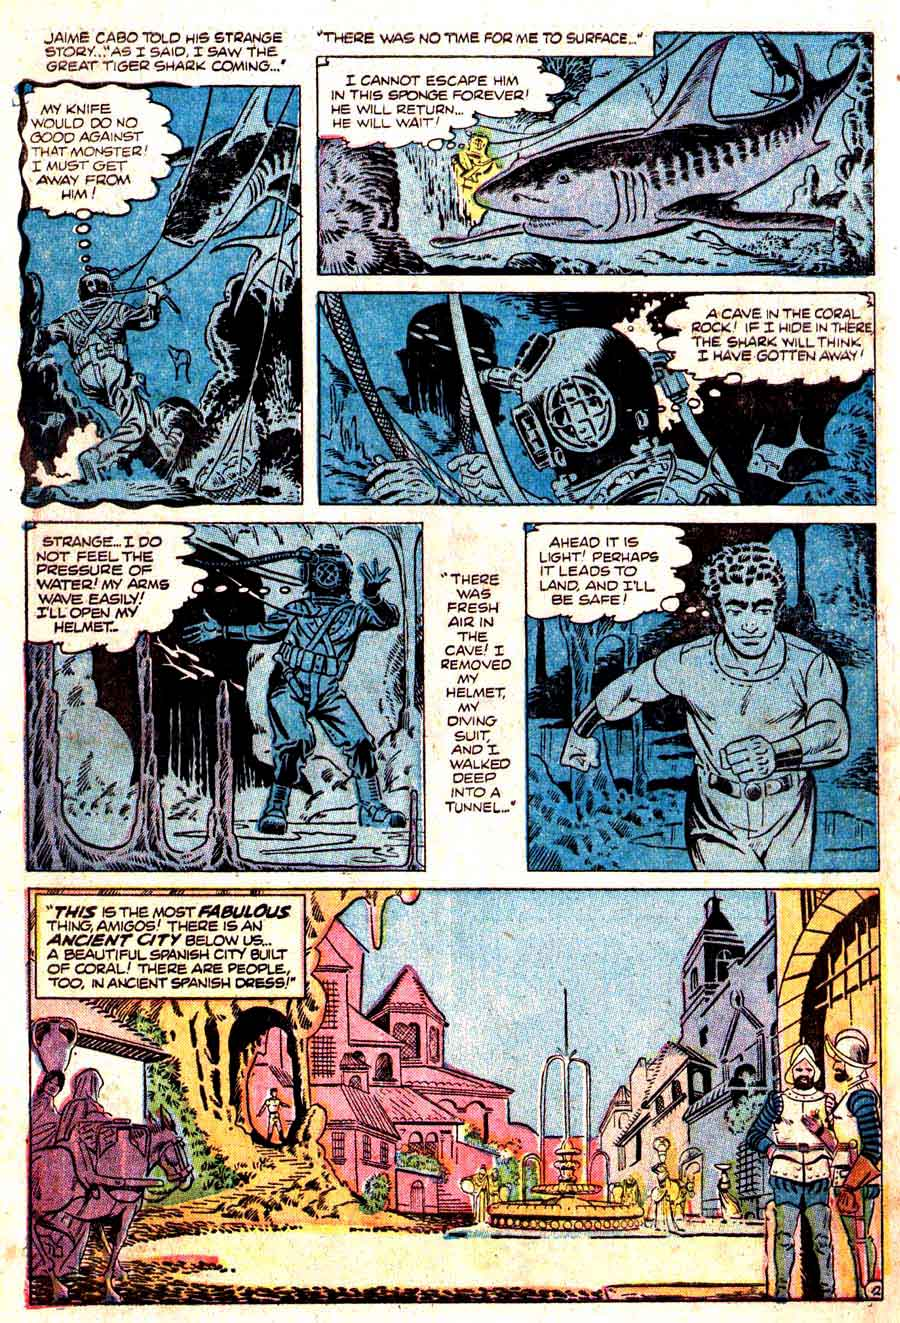 World of Suspense v1 #2 atlas comic book page art by Steve Ditko